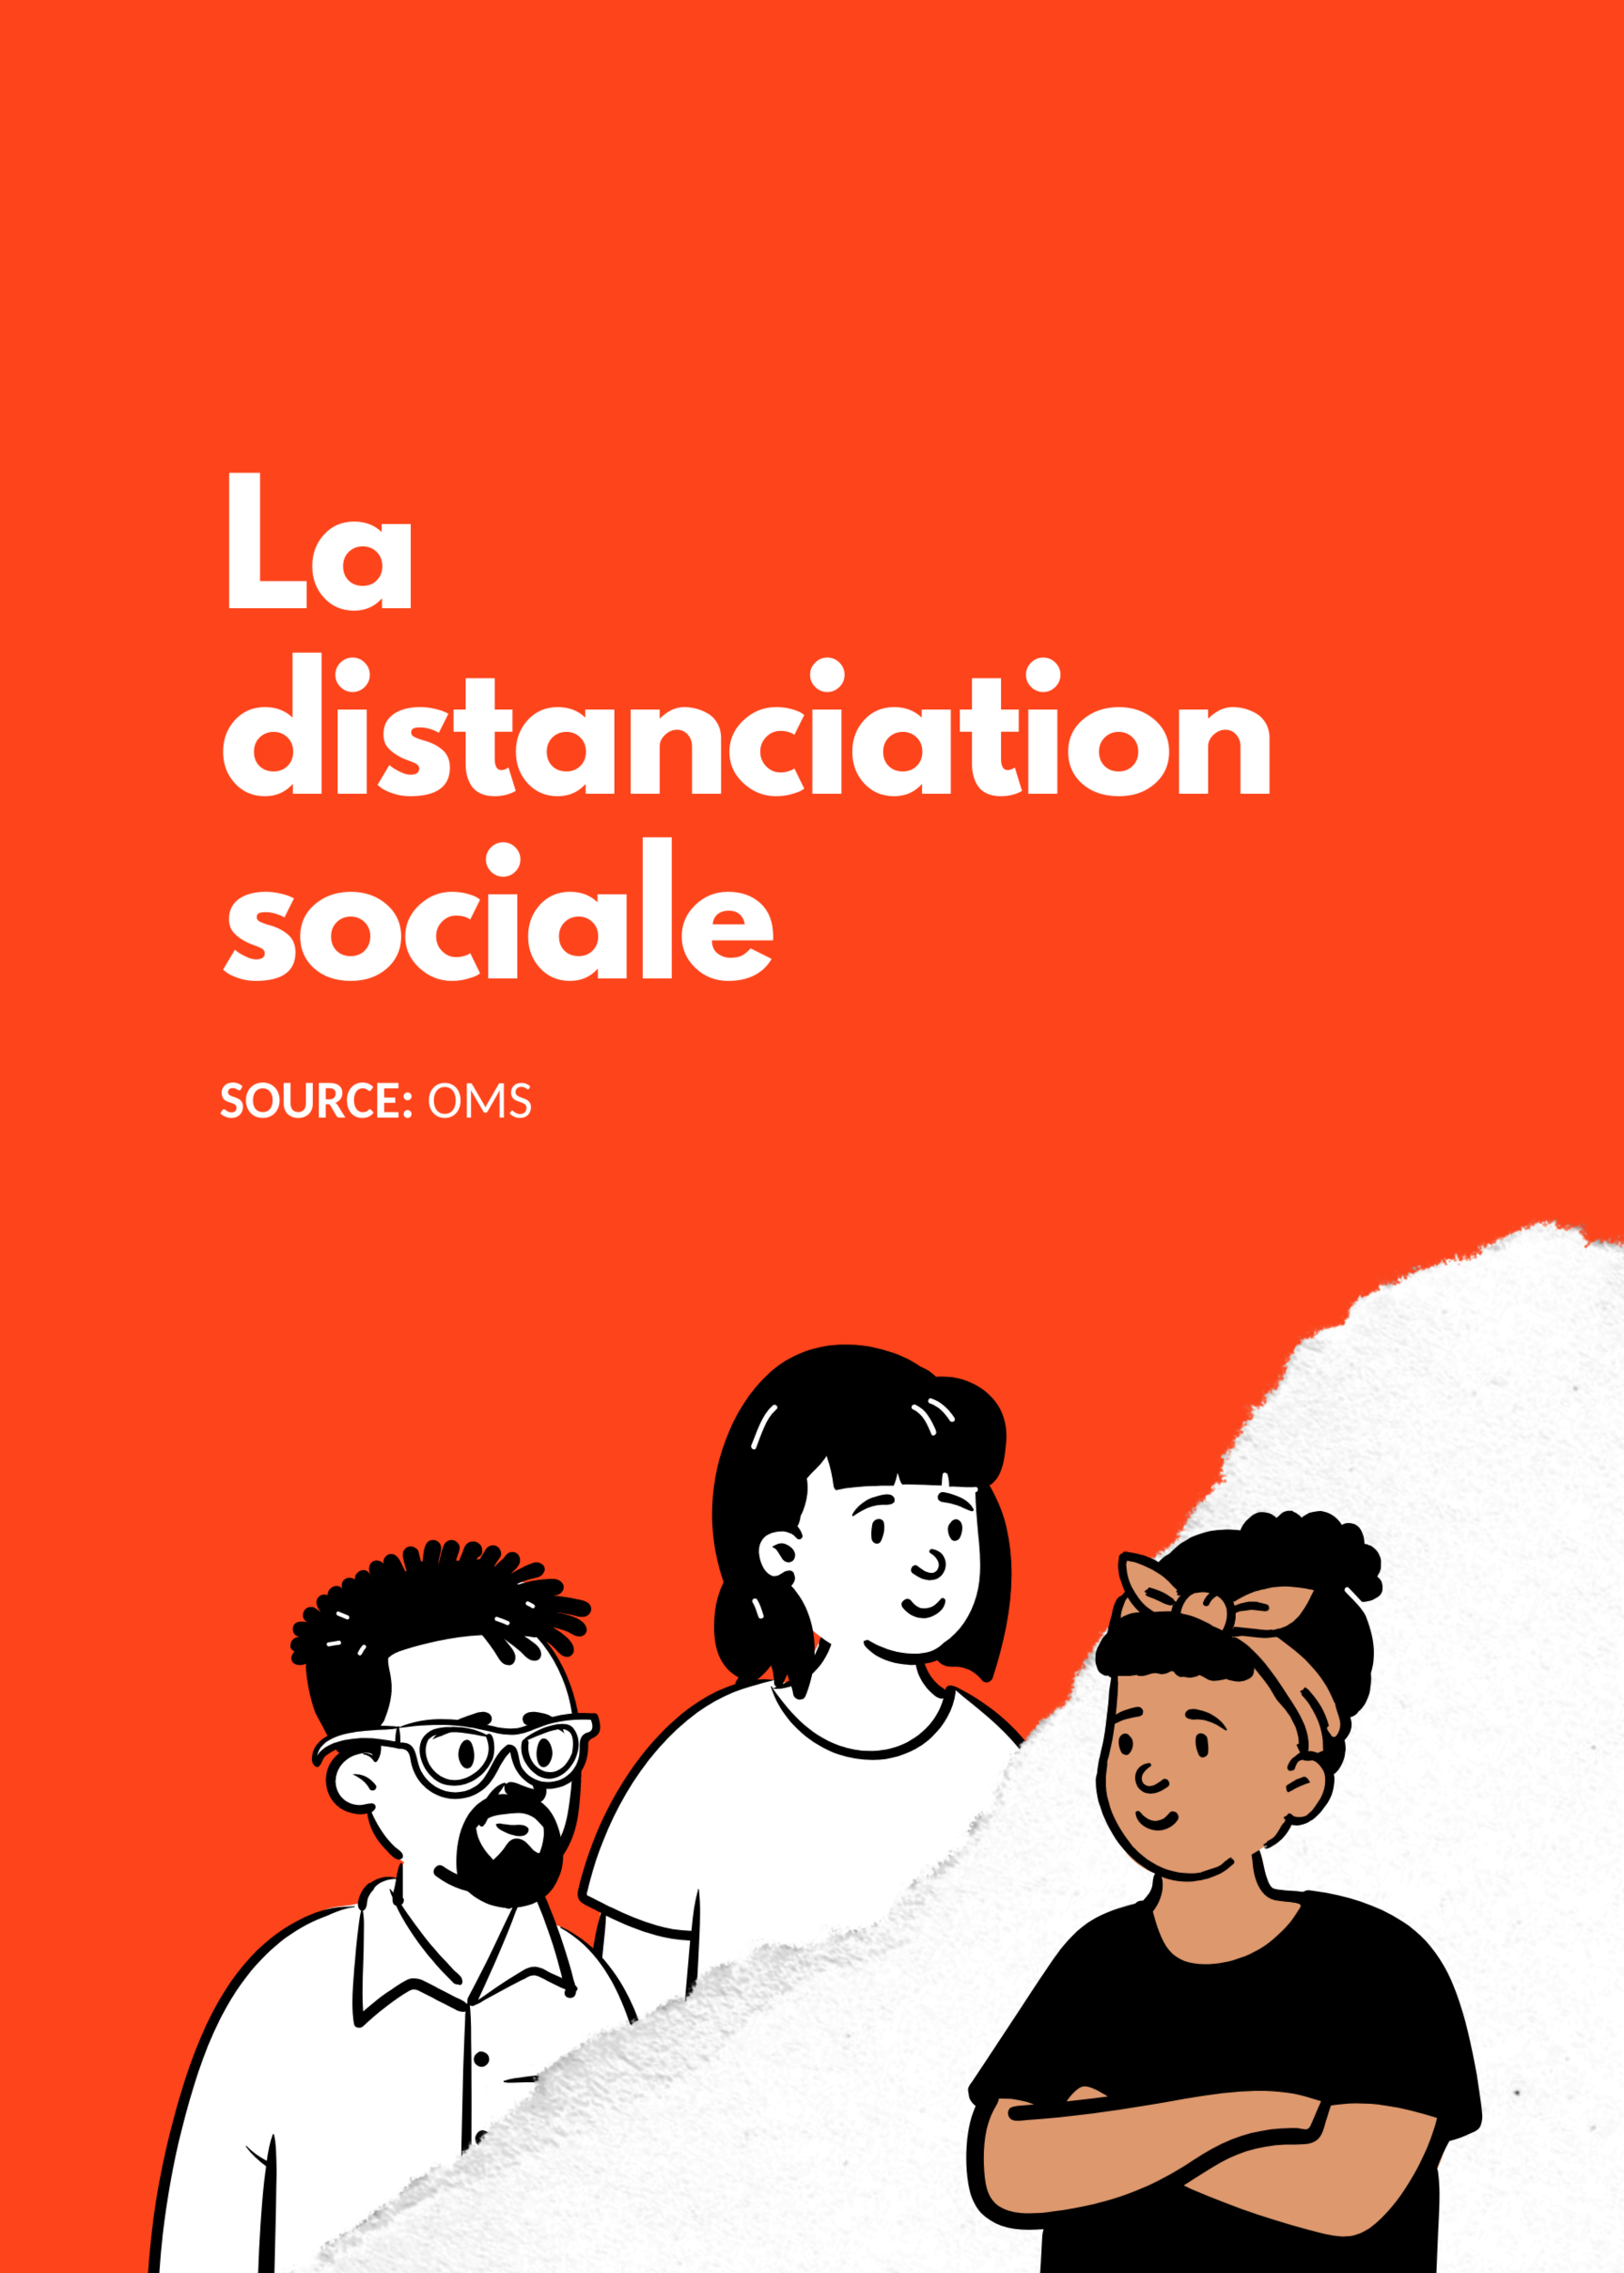 5 affiches Règles distanciation sociale